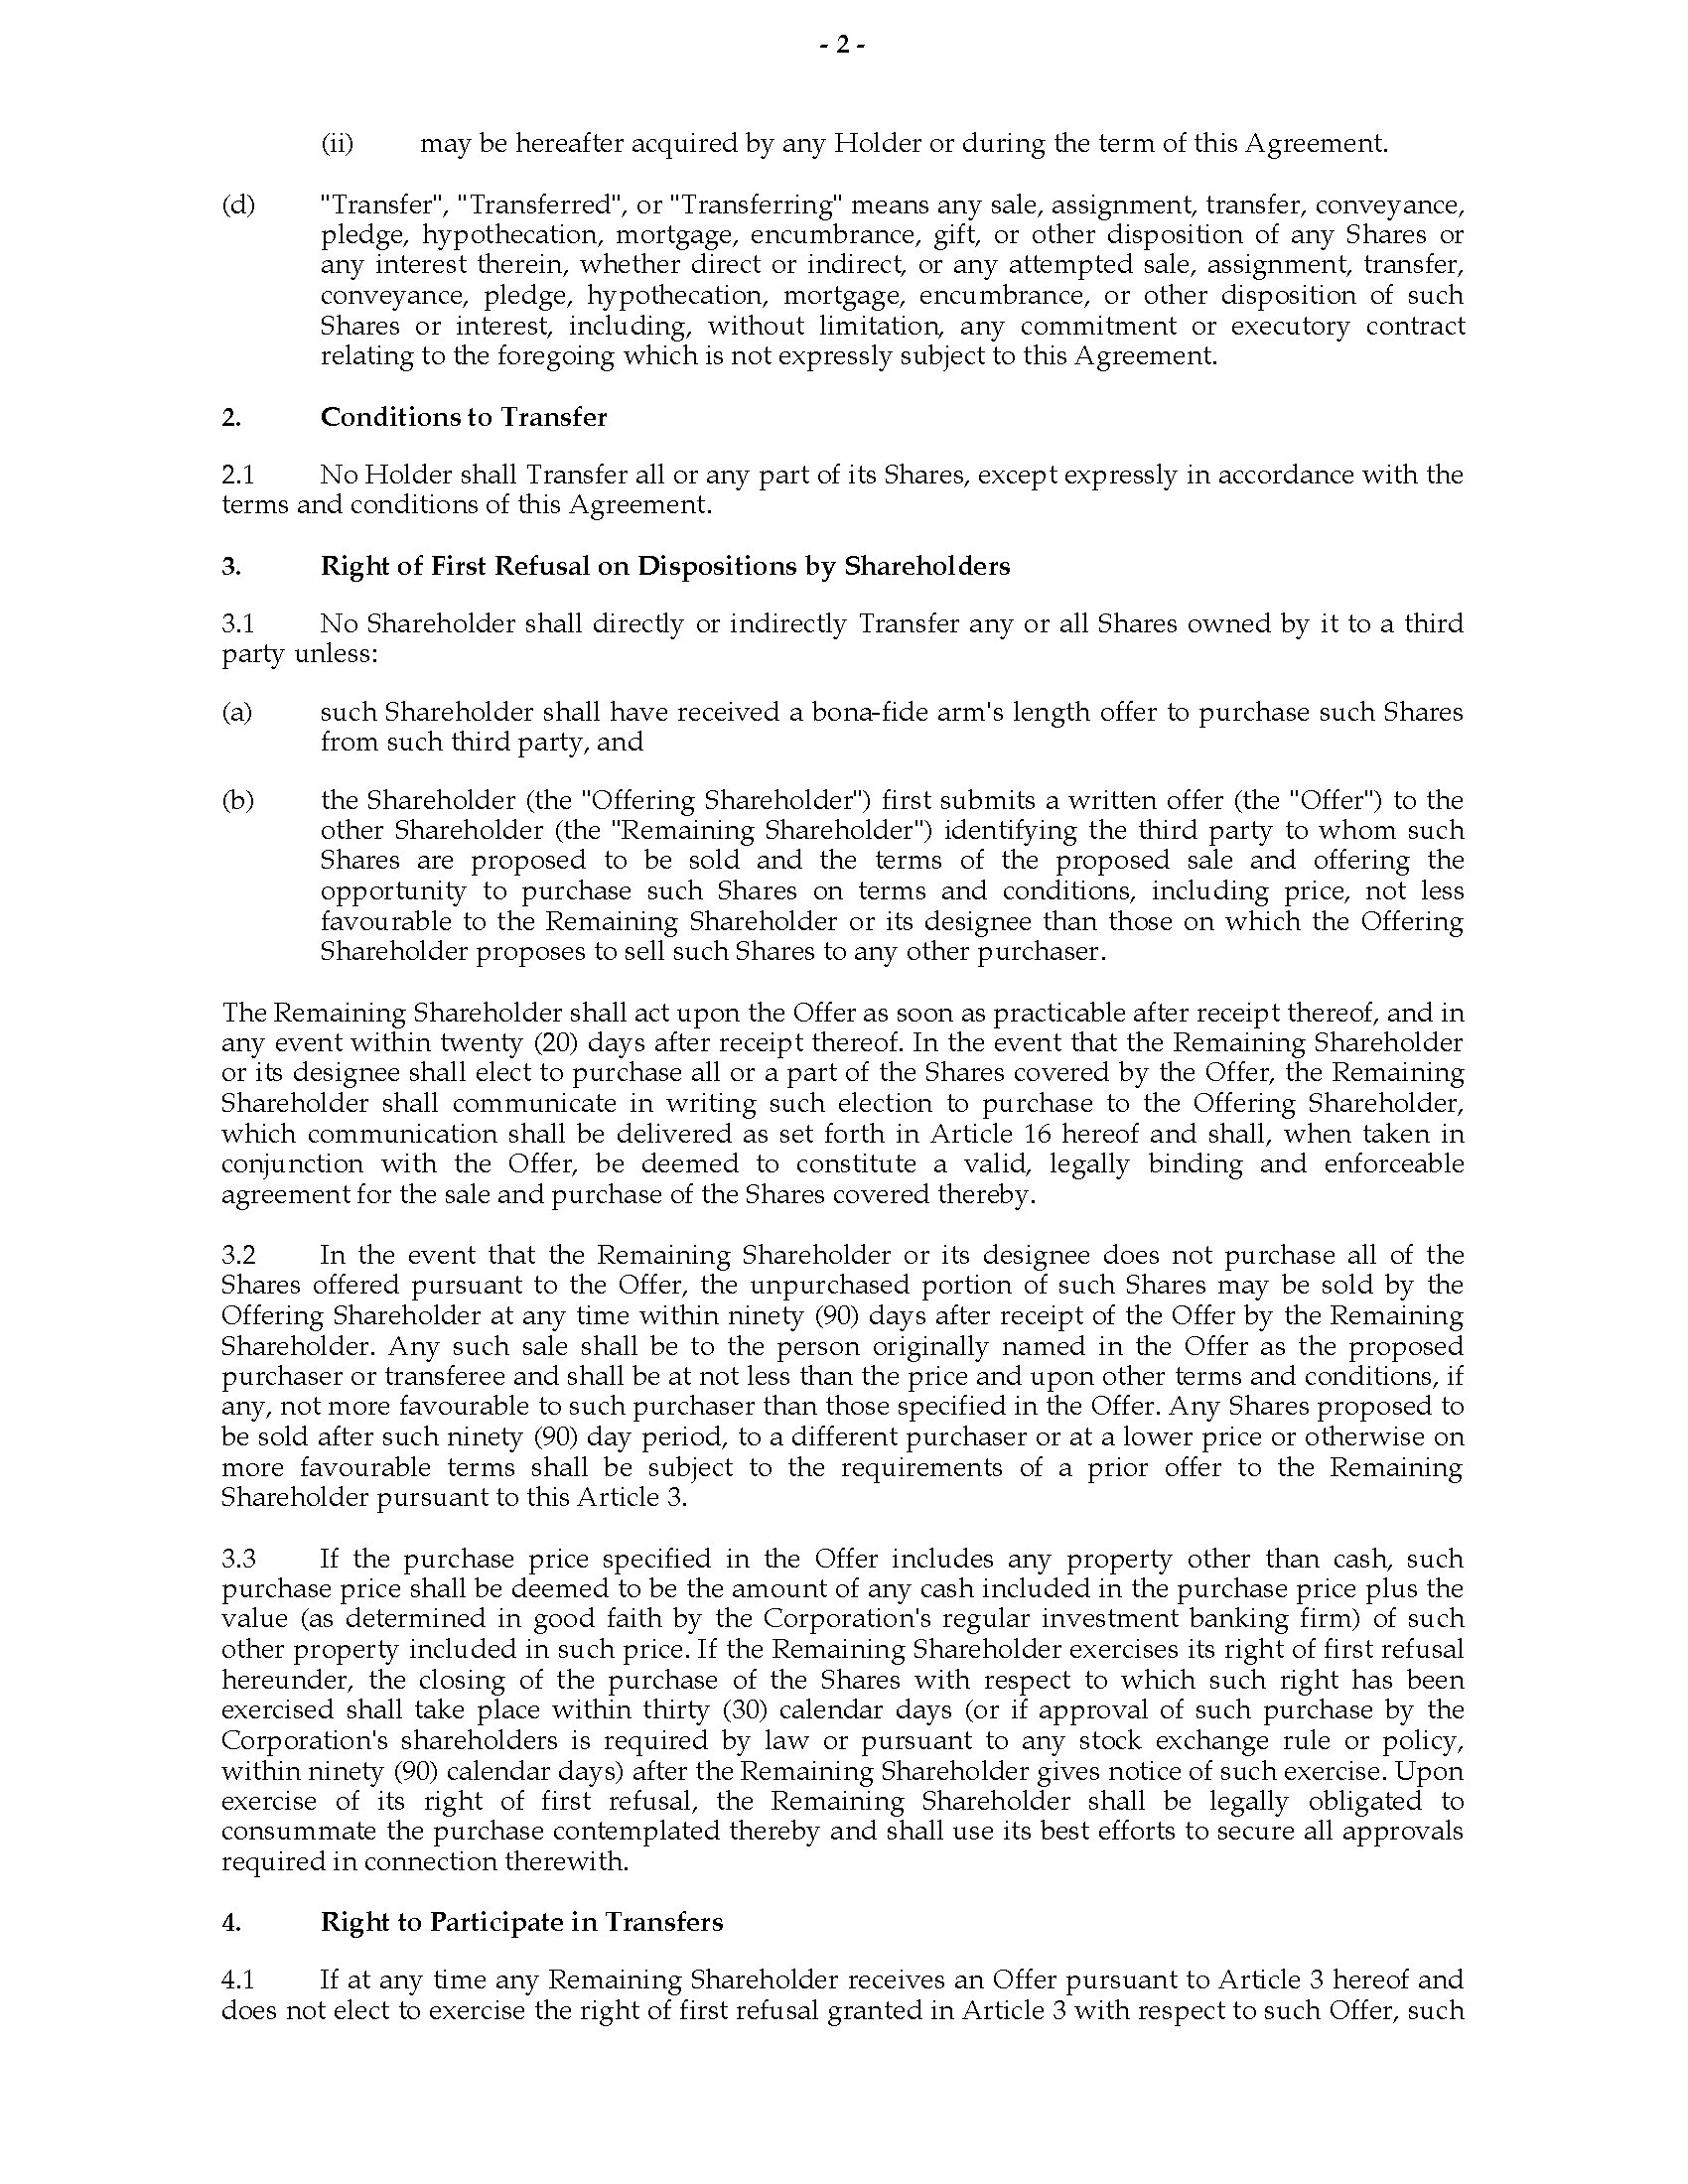 Is My Essay Good Teachers Essay Miller Exploratory Essay On Minimum Wage My Favorite Teacher Essay  In Sanskrit Analyzing An Article Essay How To Write A Problem Statement  For A